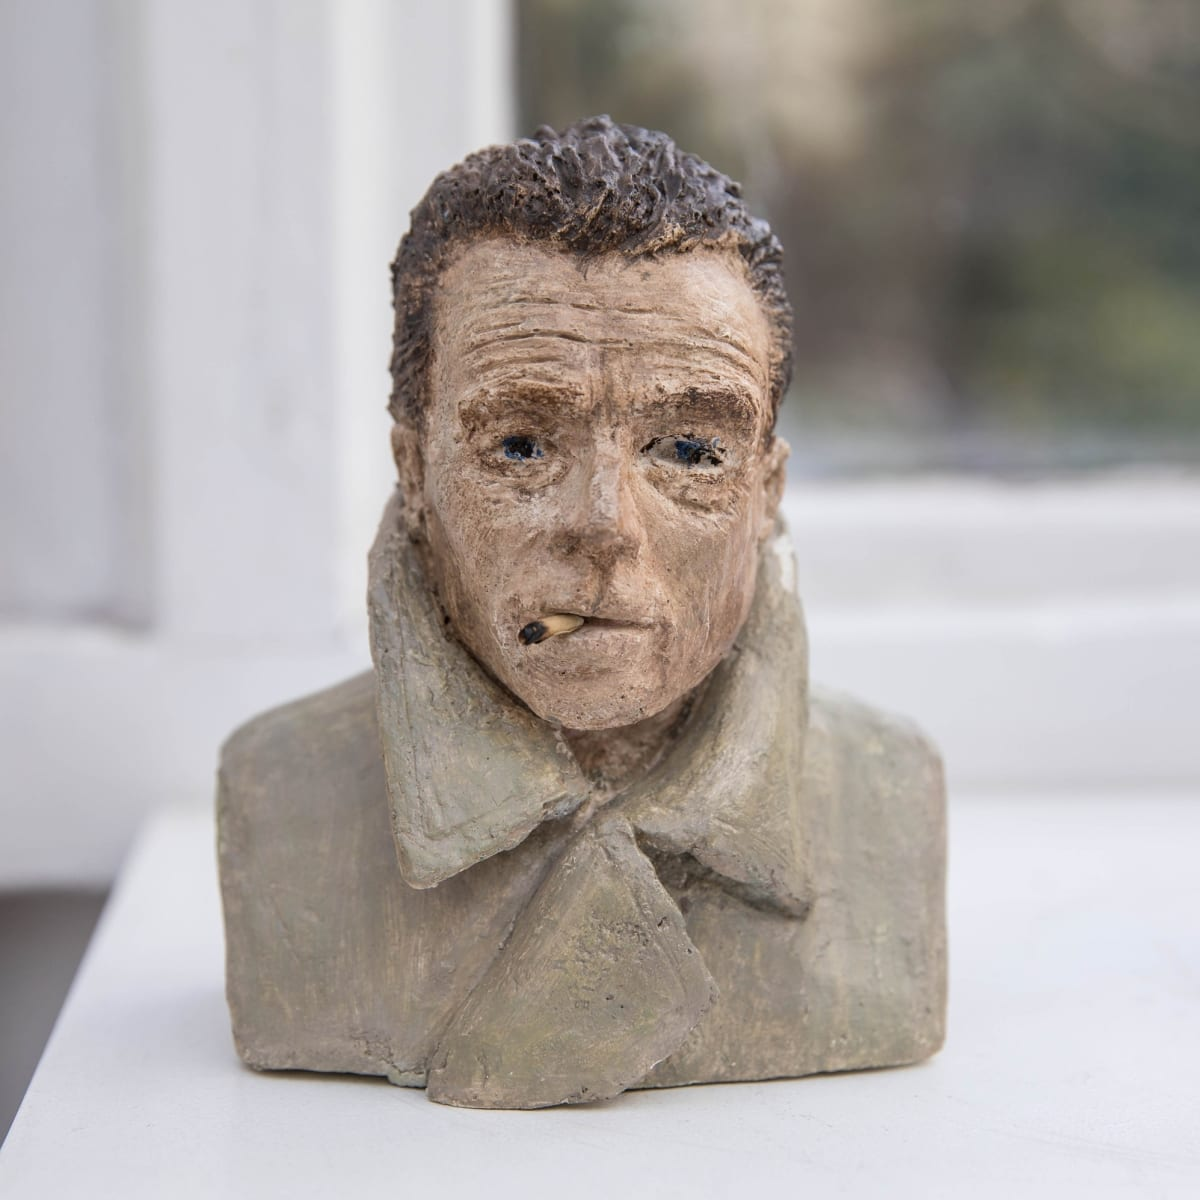 Nicole Farhi Albert Camus ciment fondu and acrylic; hand-painted bronze casts available to purchase 17 x 13 x 7 cm edition of 7 + 3 APs